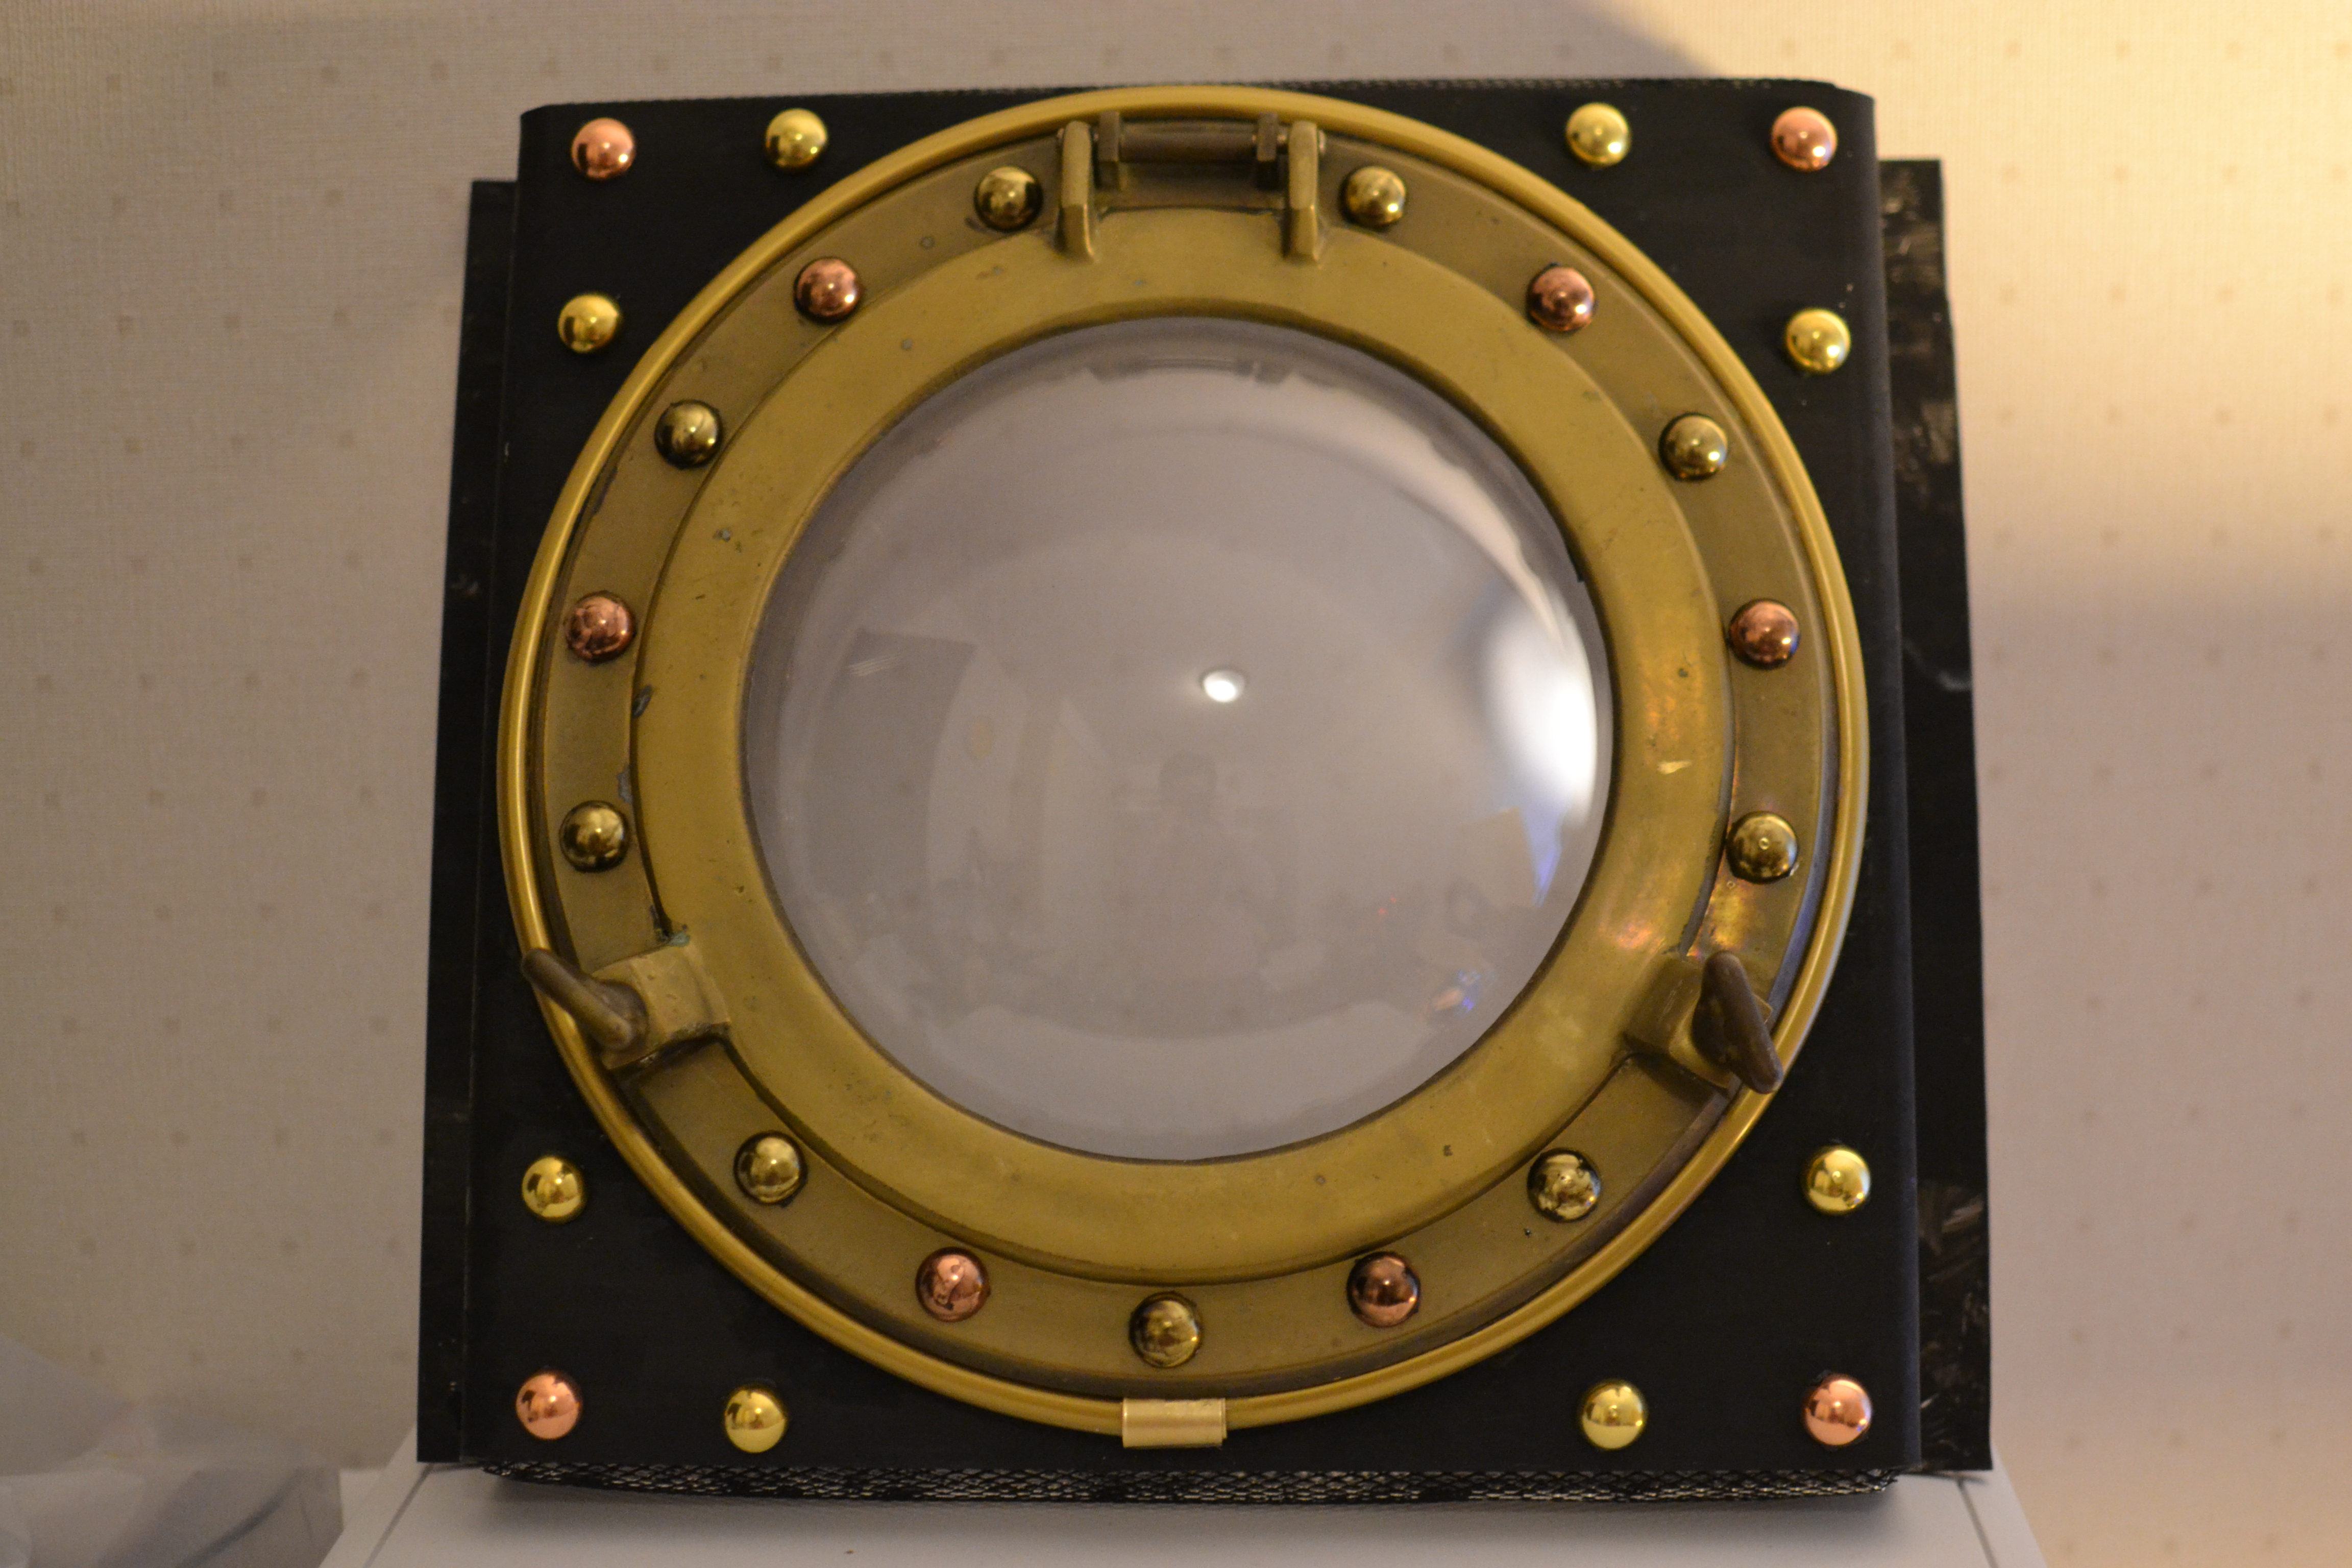 The Steampunk PC Second Face Panel